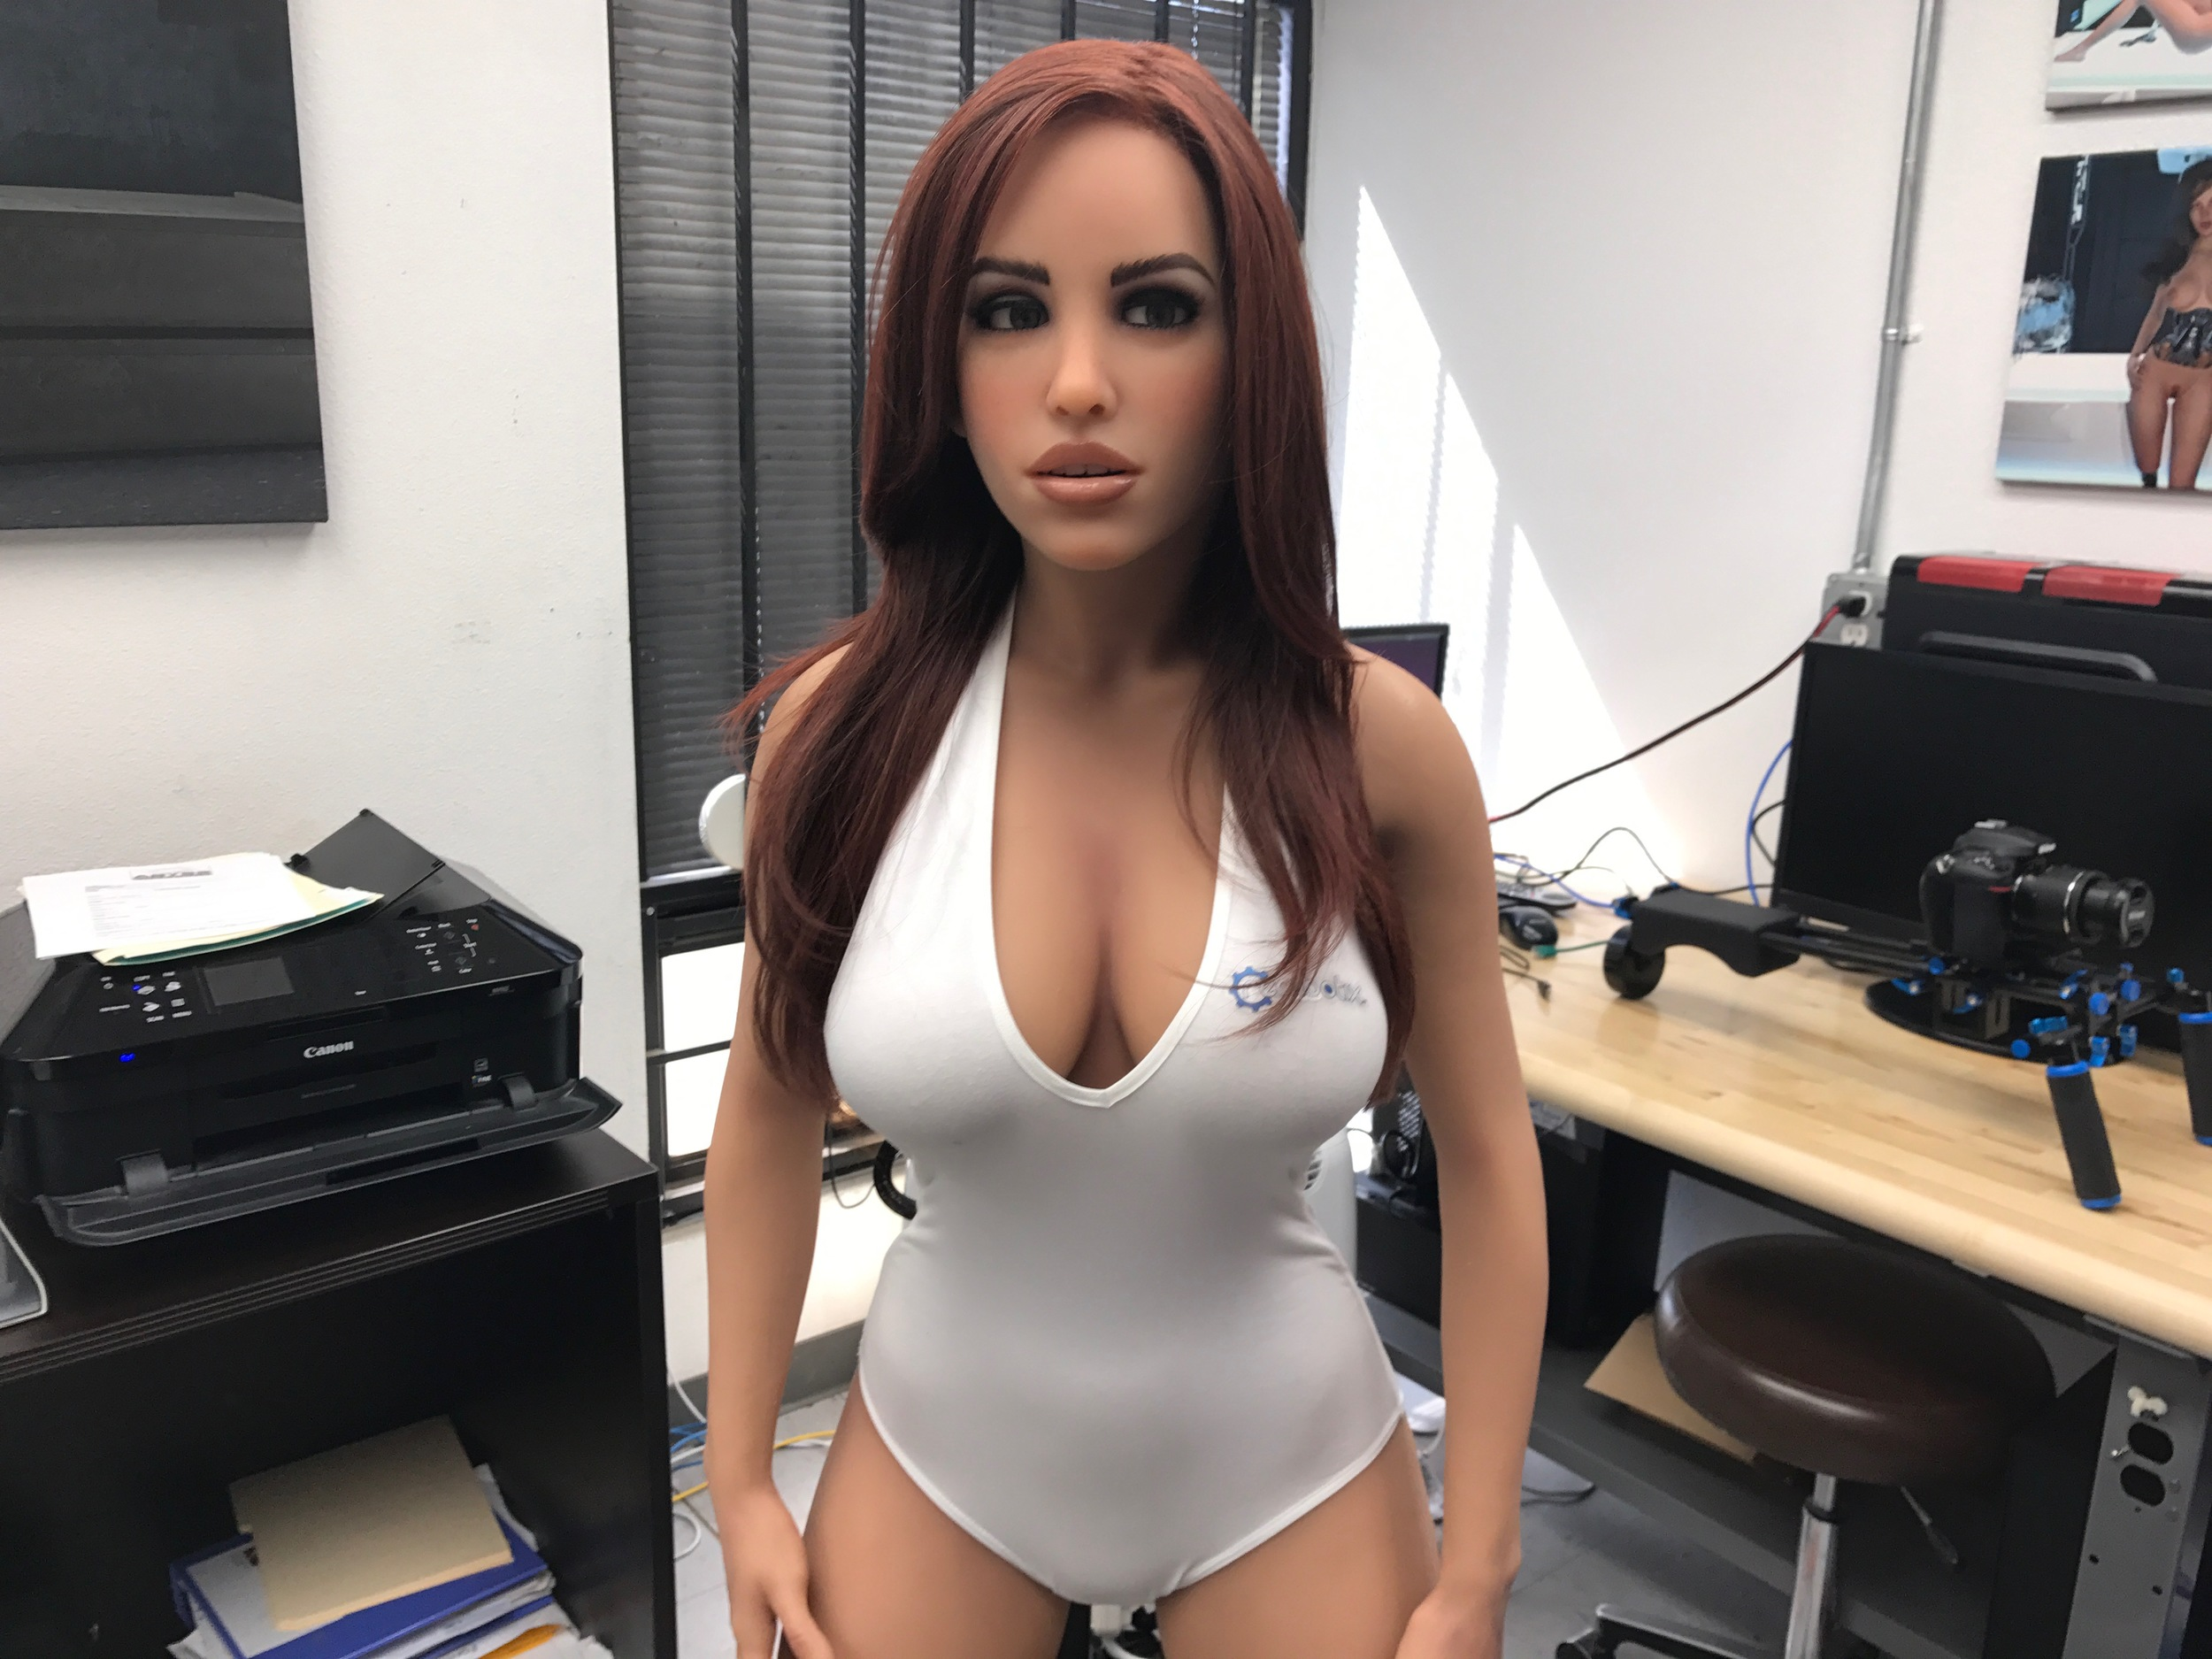 Sex robots in use